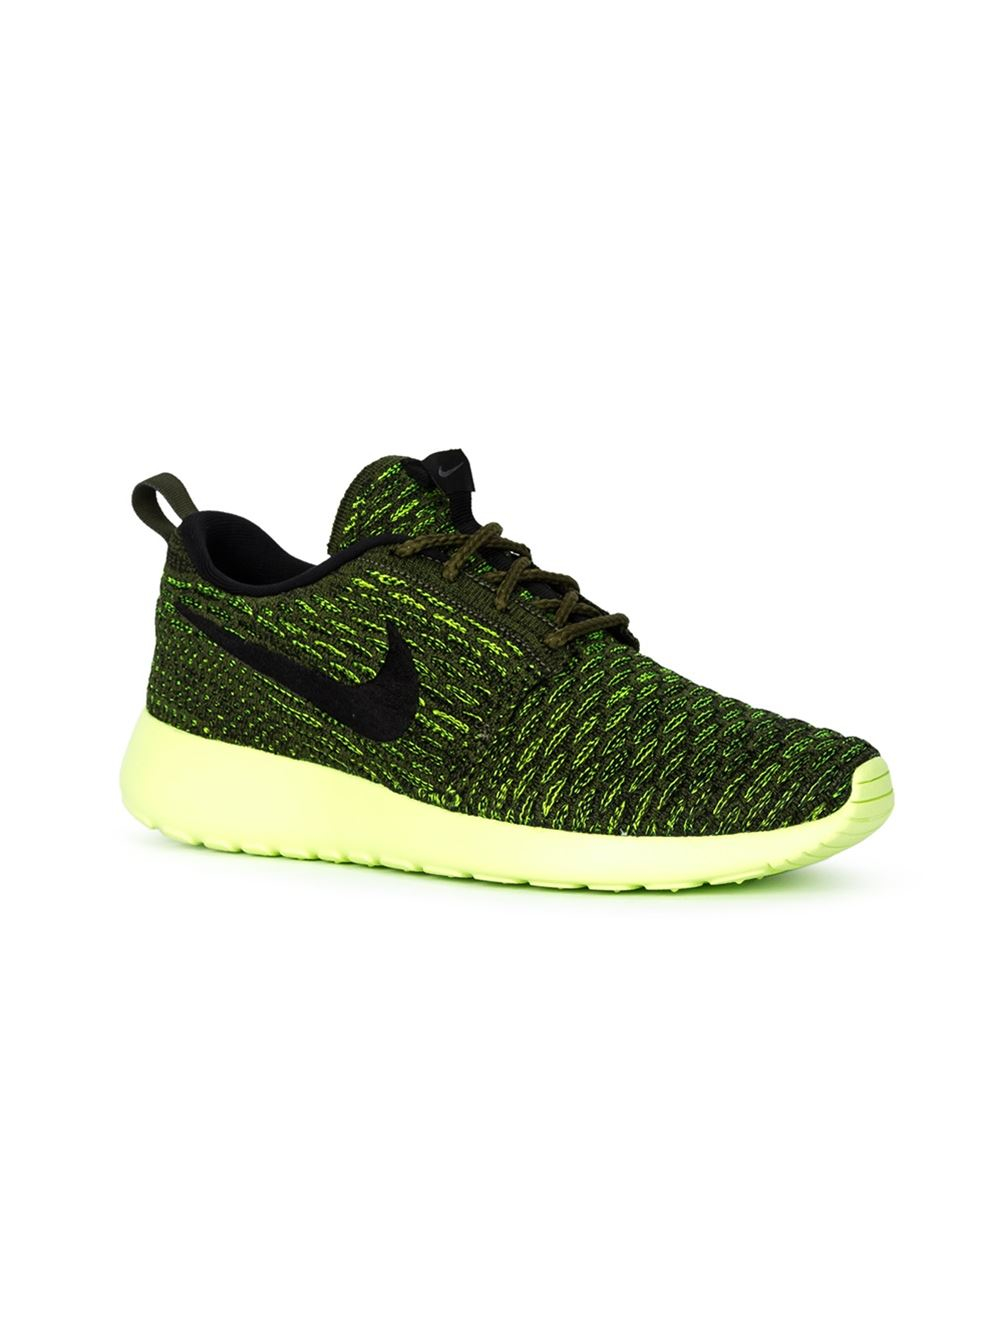 nike roshe one flyknit sneakers in yellow yellow orange. Black Bedroom Furniture Sets. Home Design Ideas